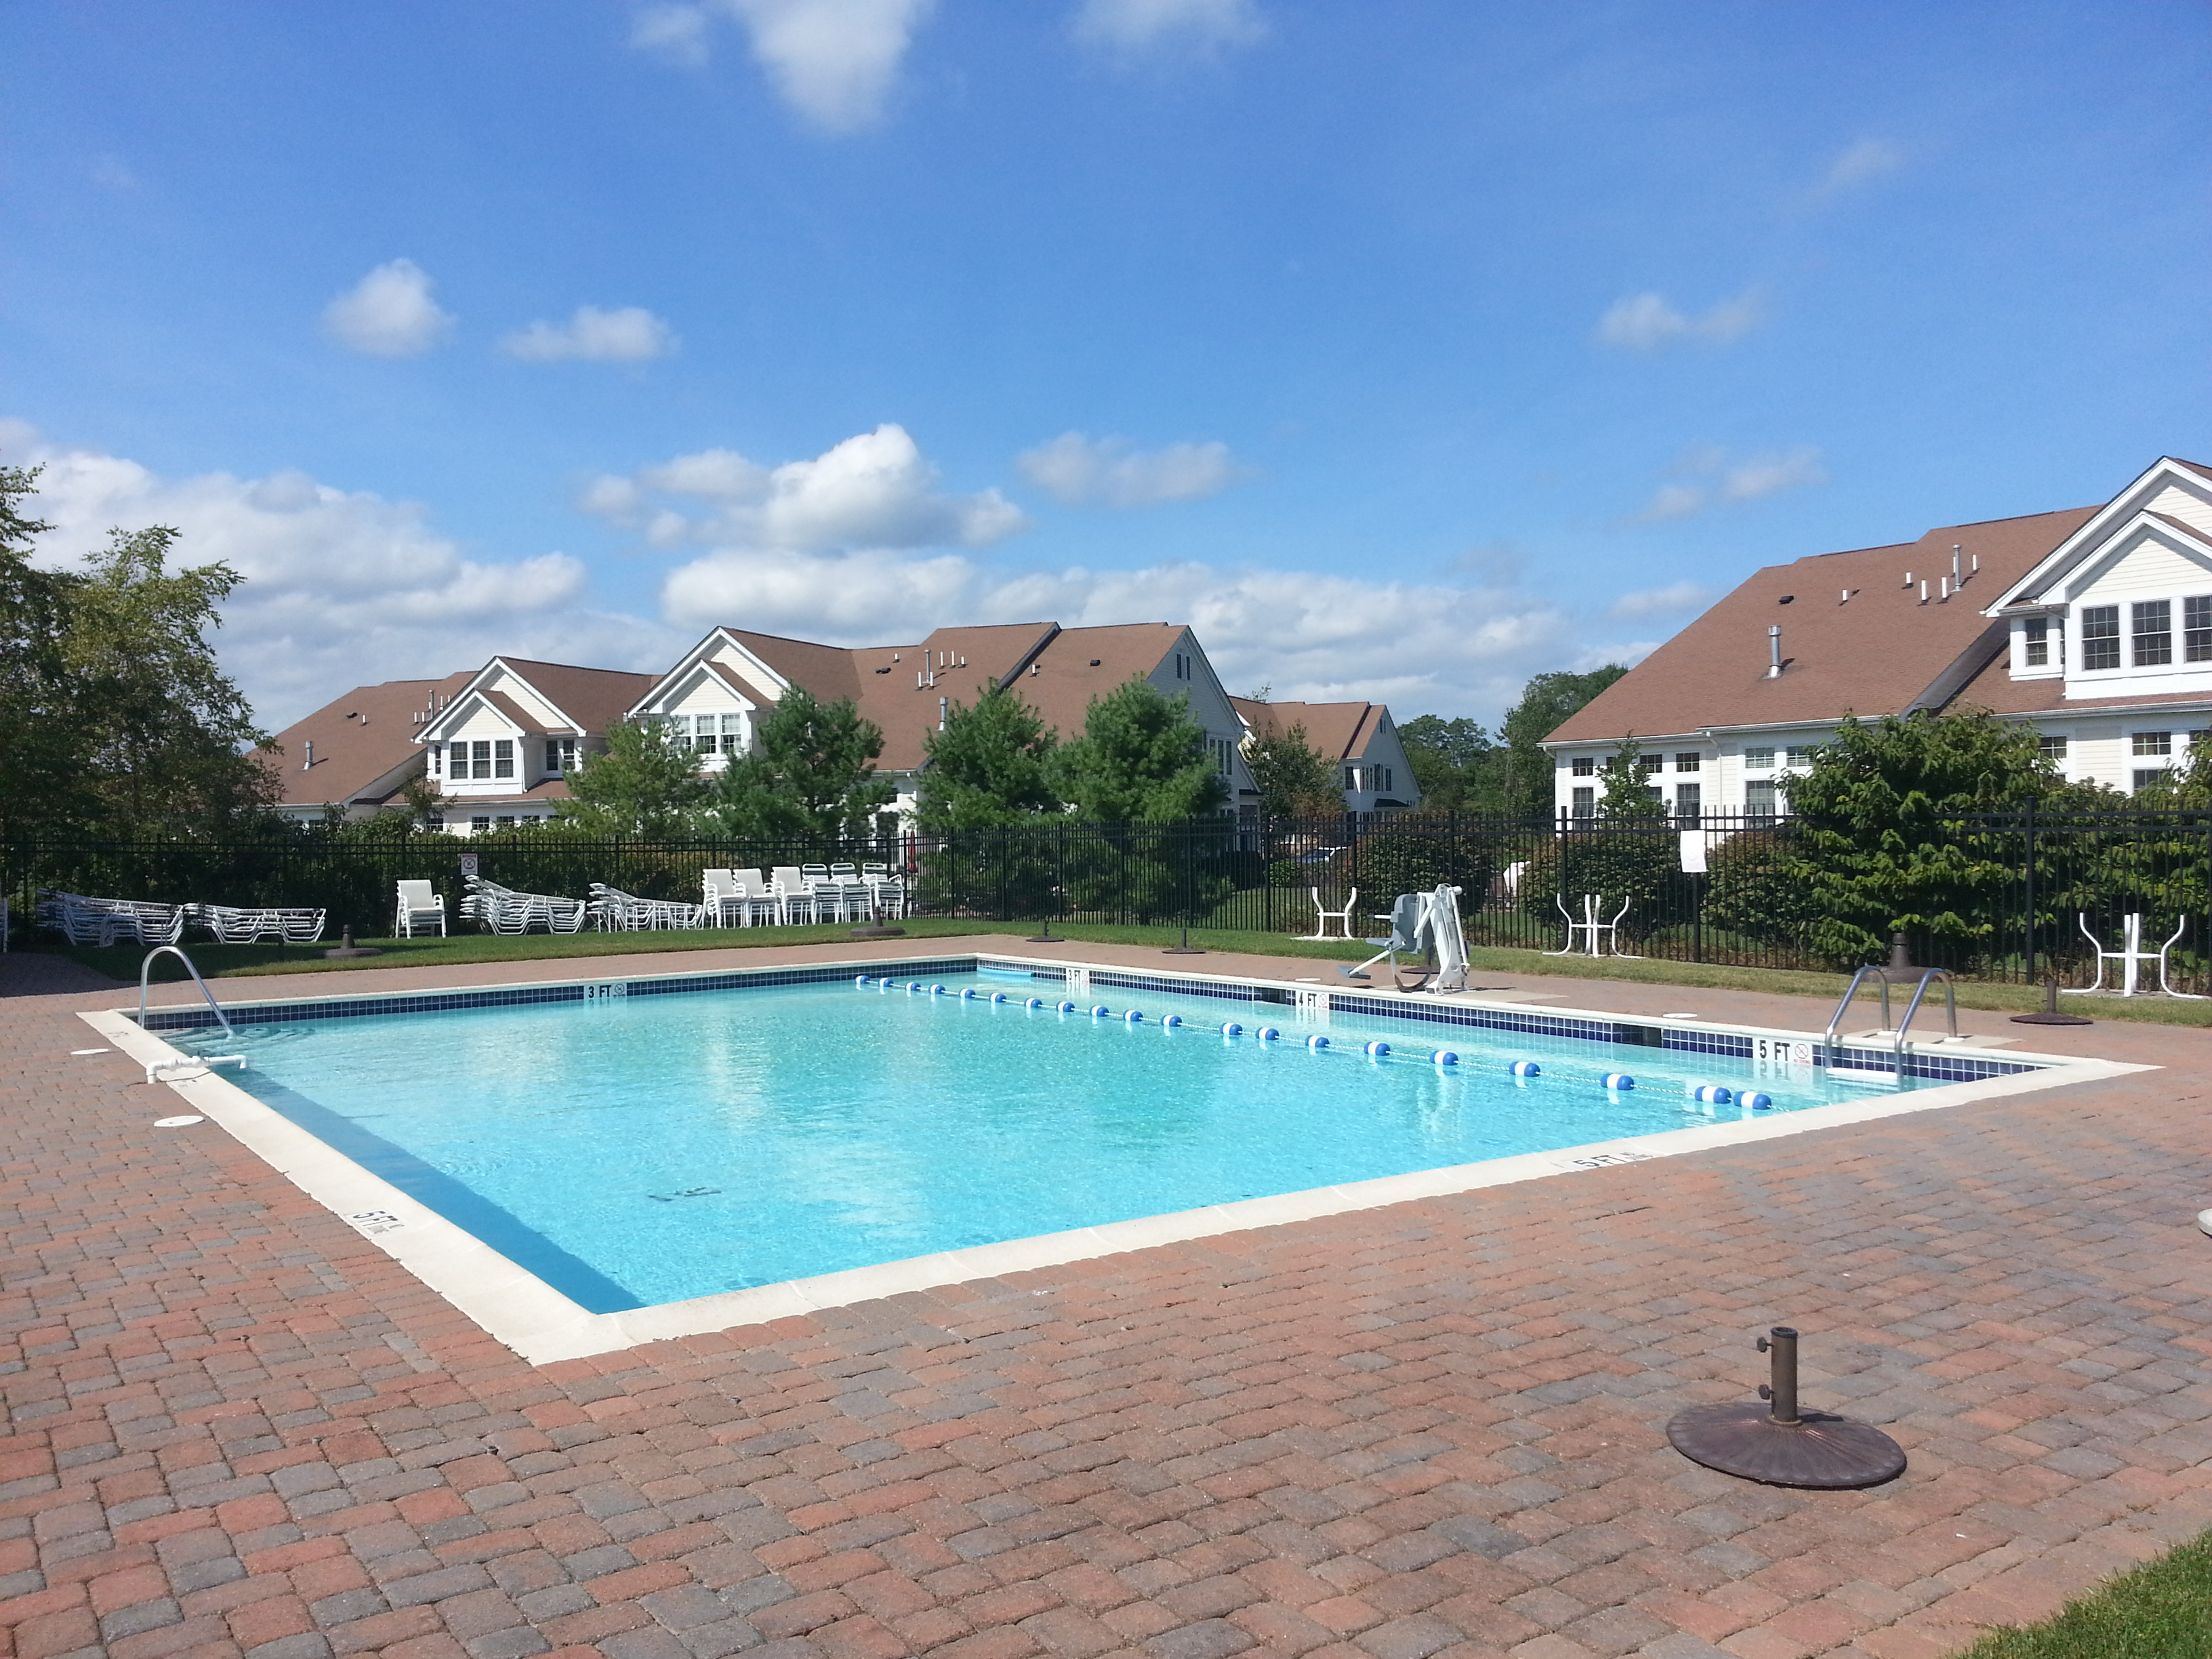 Among the Greenbriar Falls amenities is this pool located next to the clubhouse.